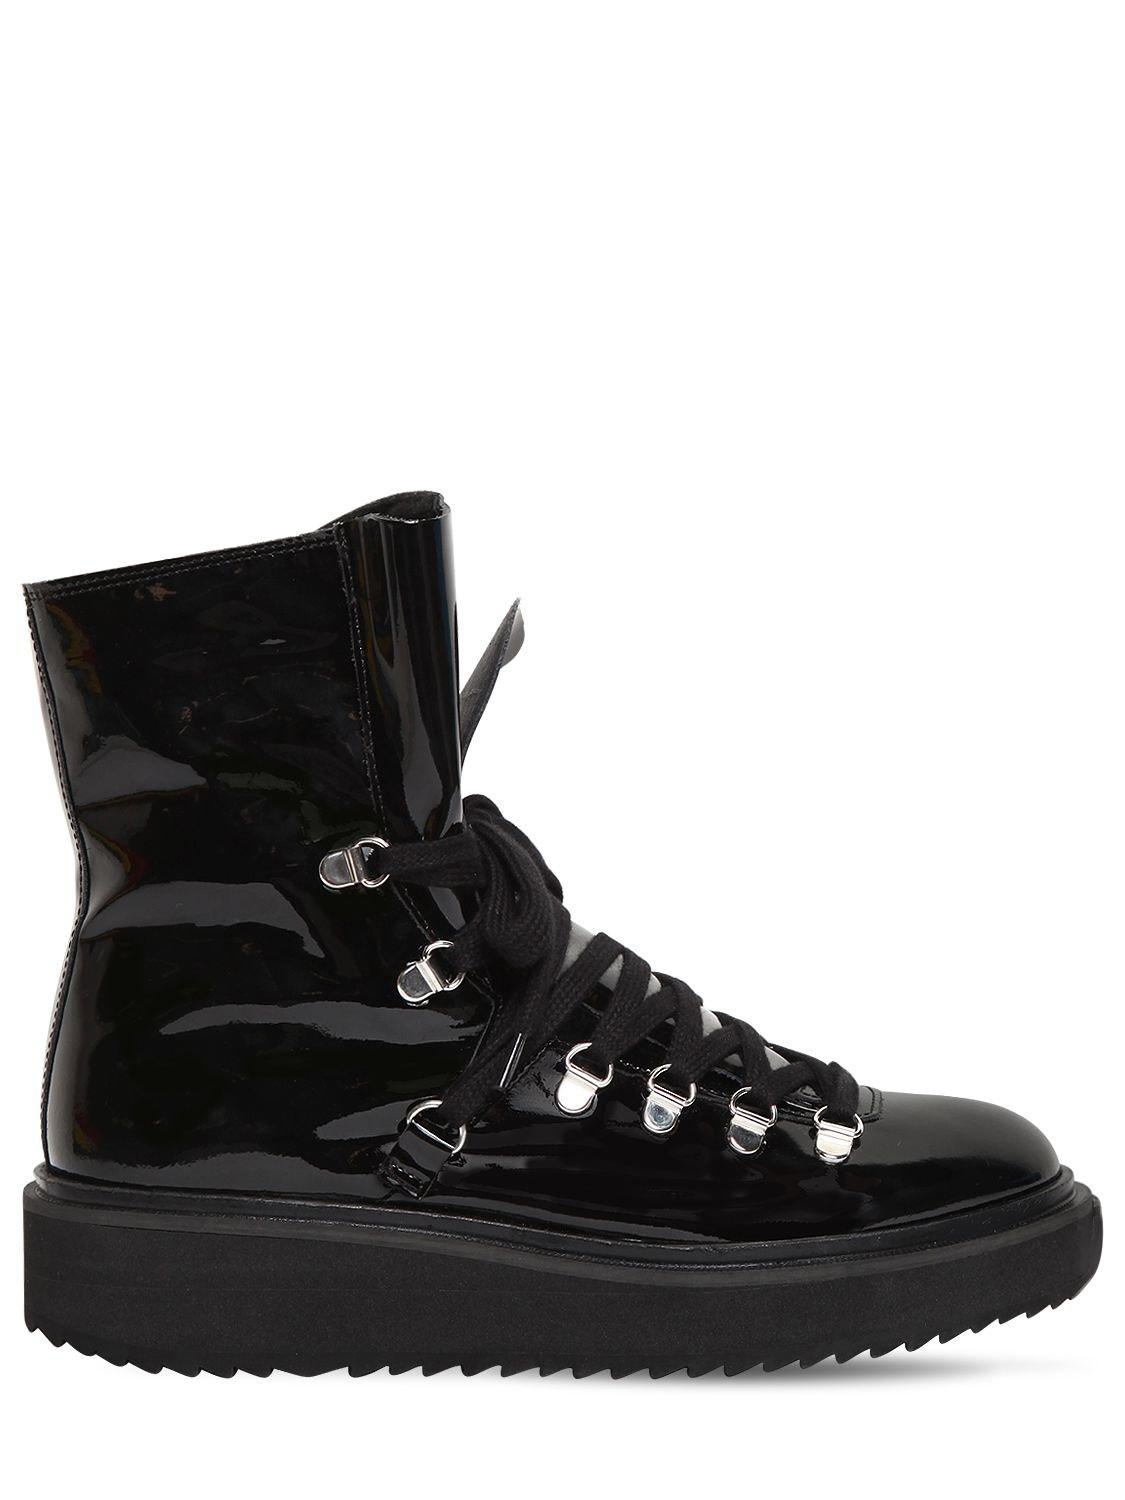 Kenzo 40MM PATENT LEATHER & SHEARLING BOOTS 2018 Unisex Sale Online Largest Supplier Sale Online Clearance Low Shipping In China For Sale Wurc7